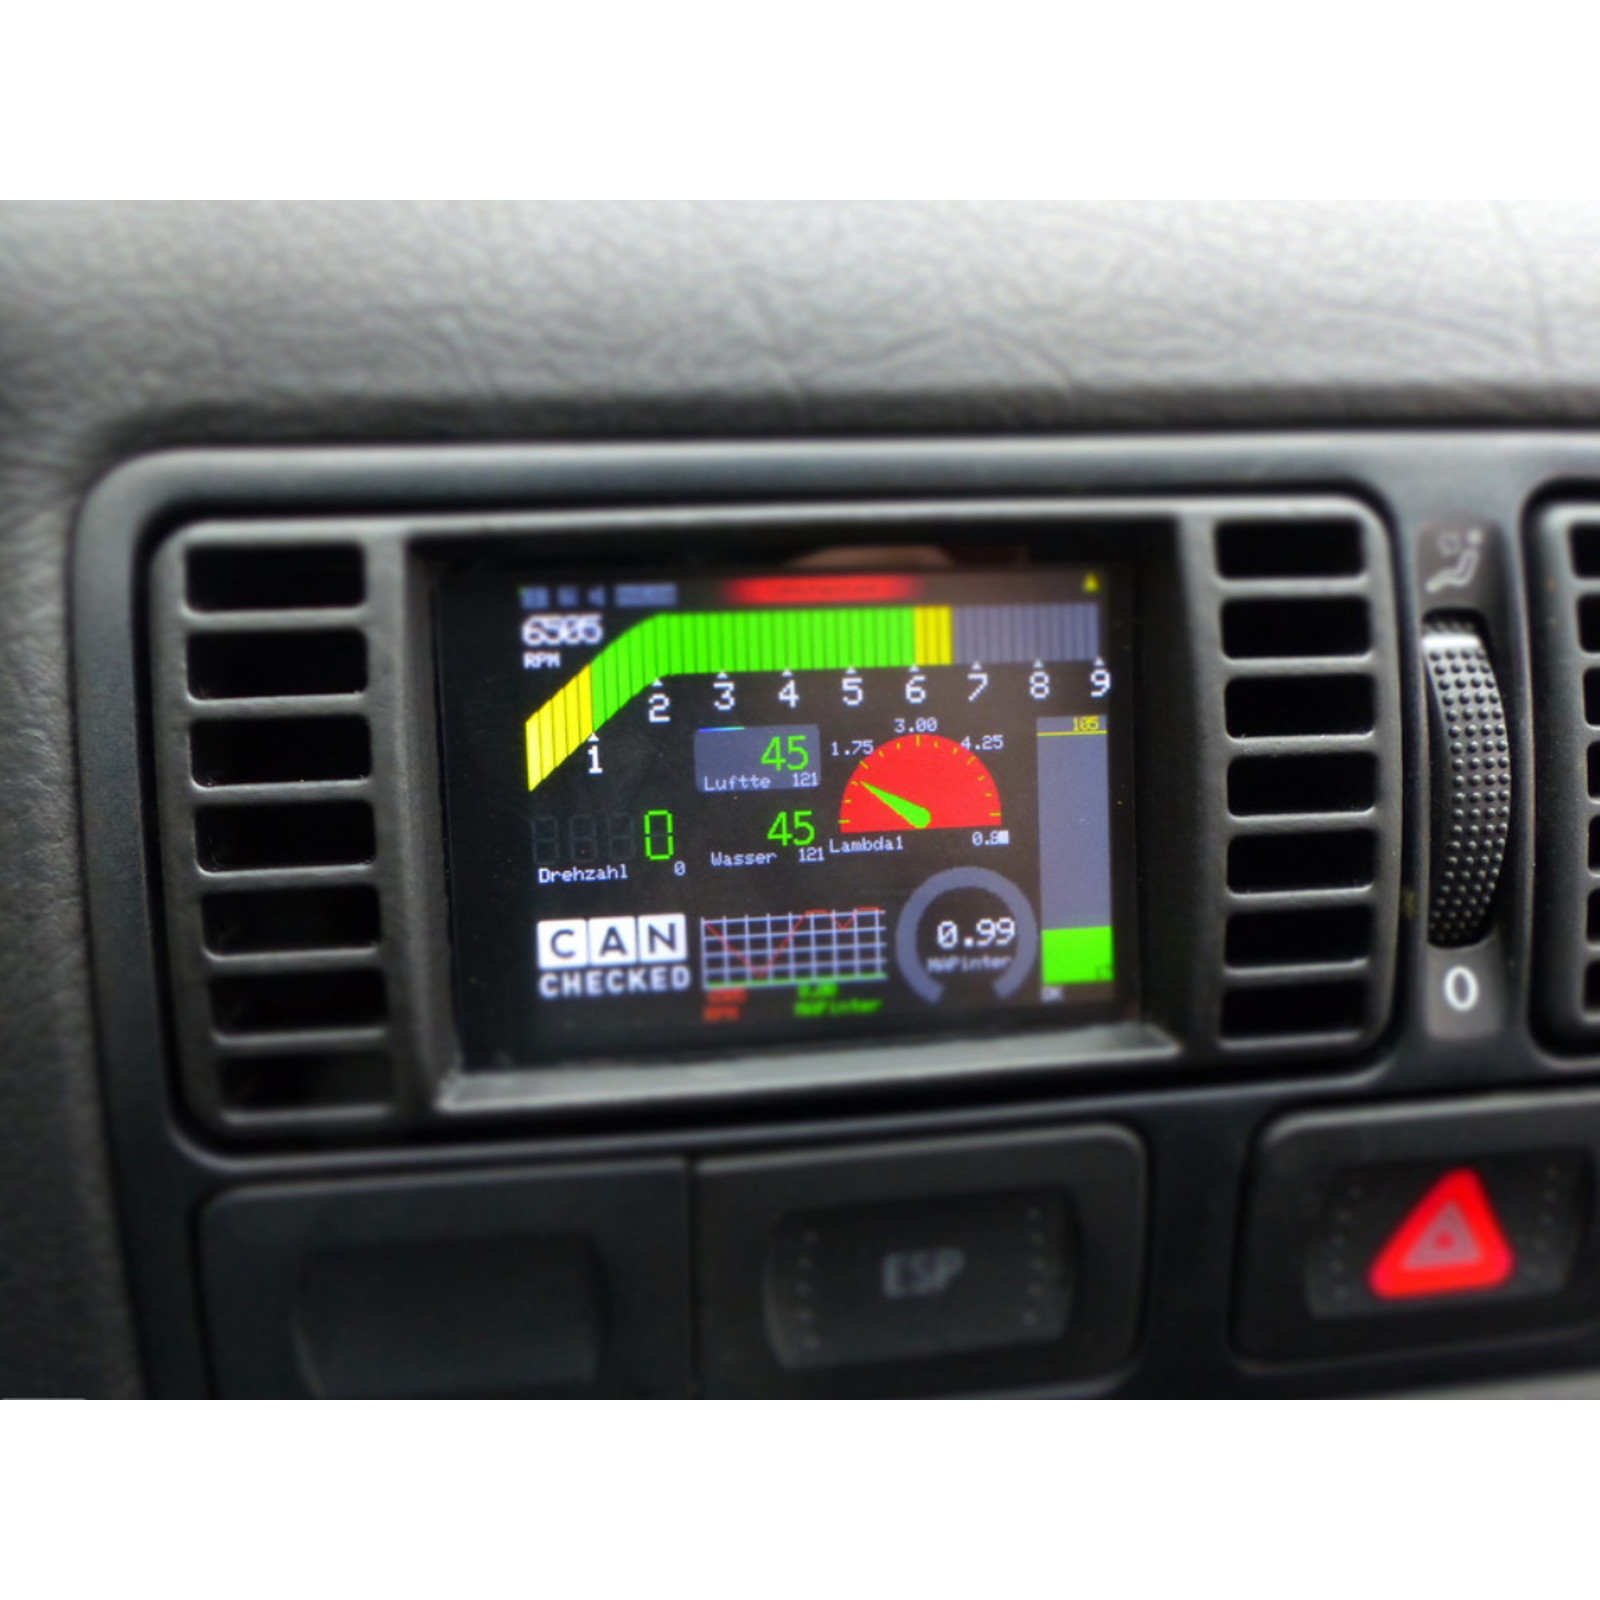 Canchecked Mfd28 2 8 Quot Display Vw Golf Mk4 399 01